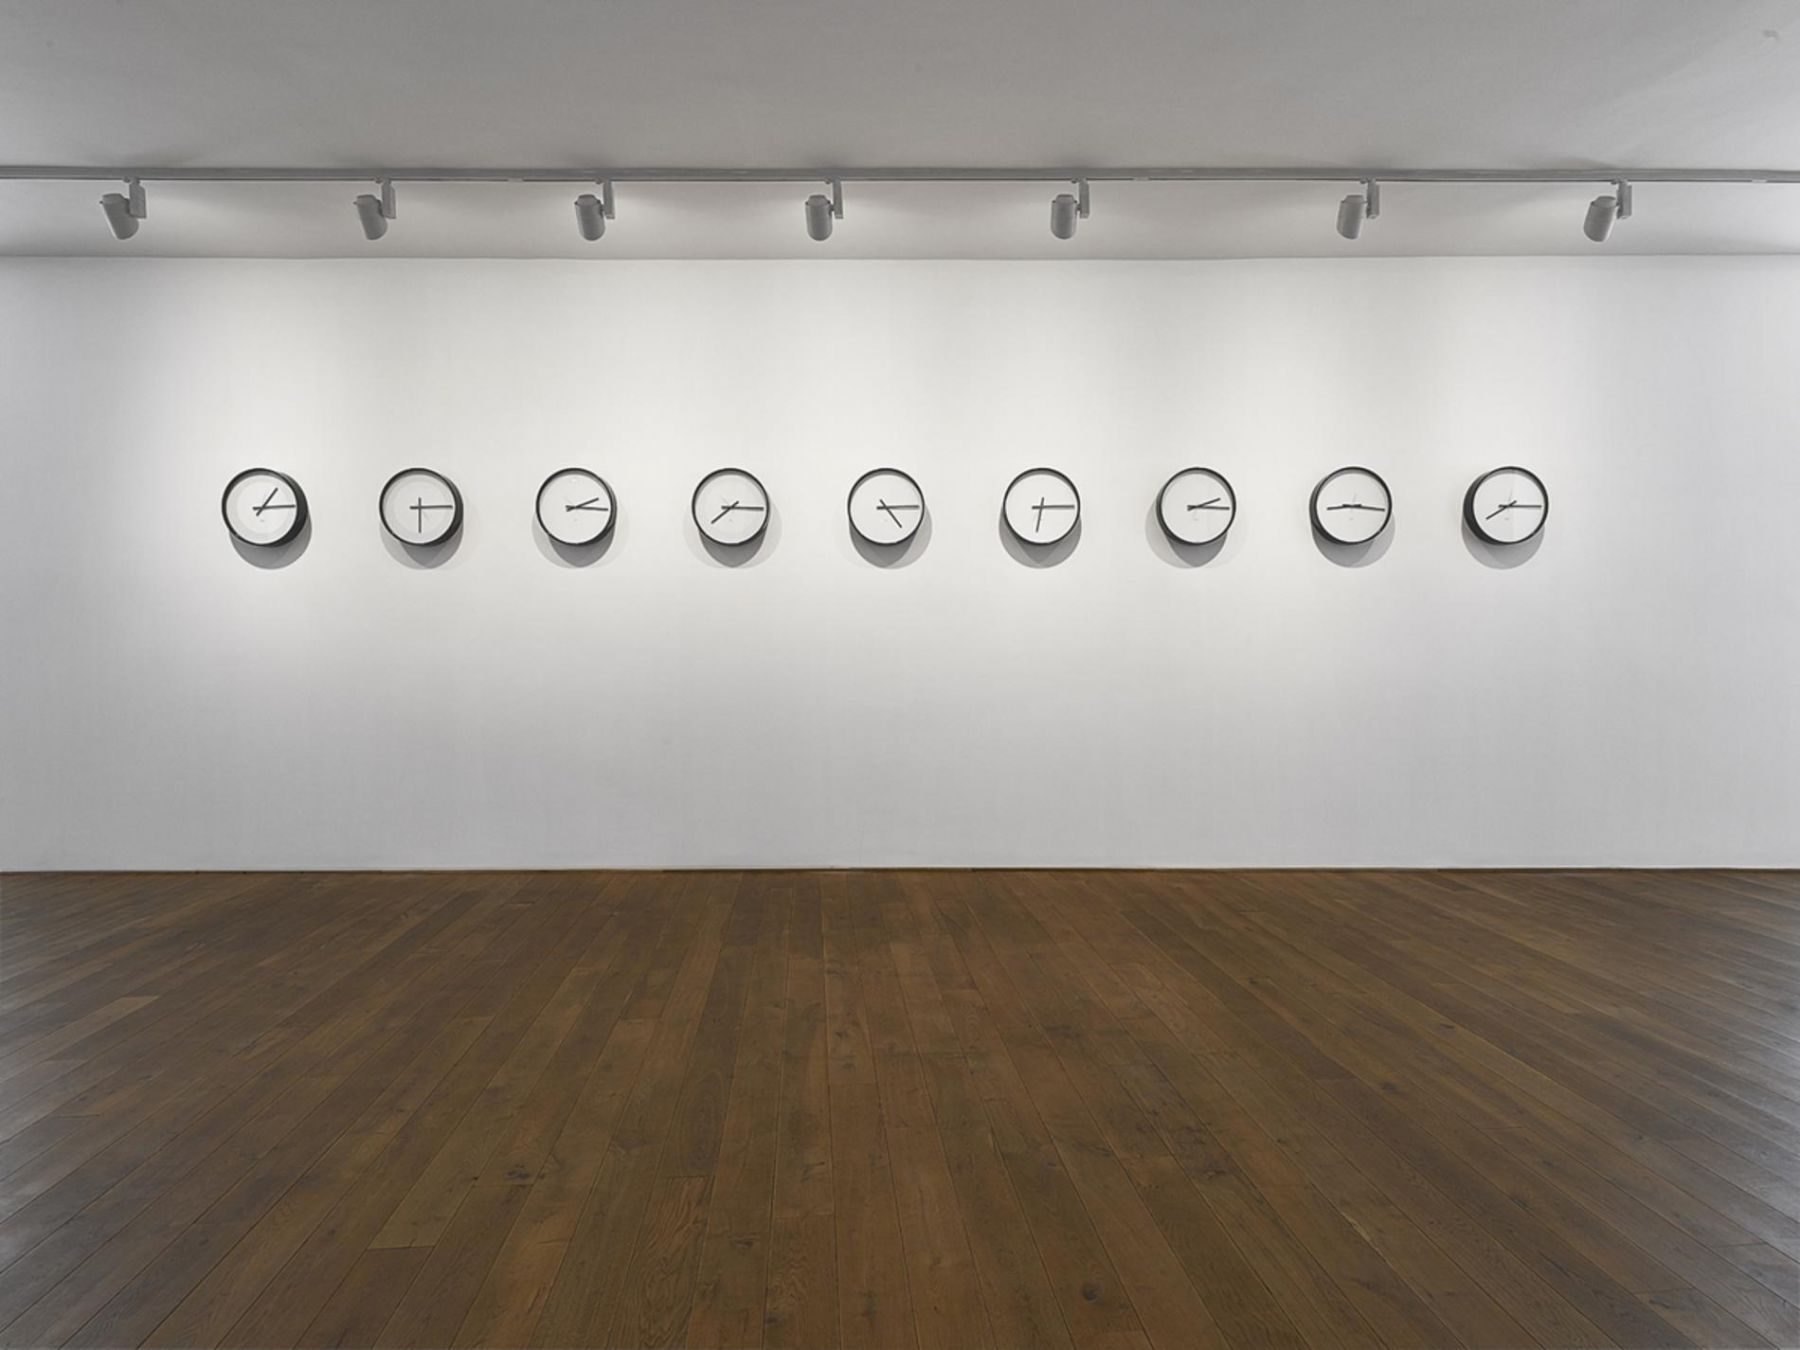 , KATIE PATERSONTimepieces (Solar System),2014Nine adapted clocks Each:17 11/16 x 17 11/16 x 3 11/16 in. (45 x 45 x 9.5 cm) Edition of 9